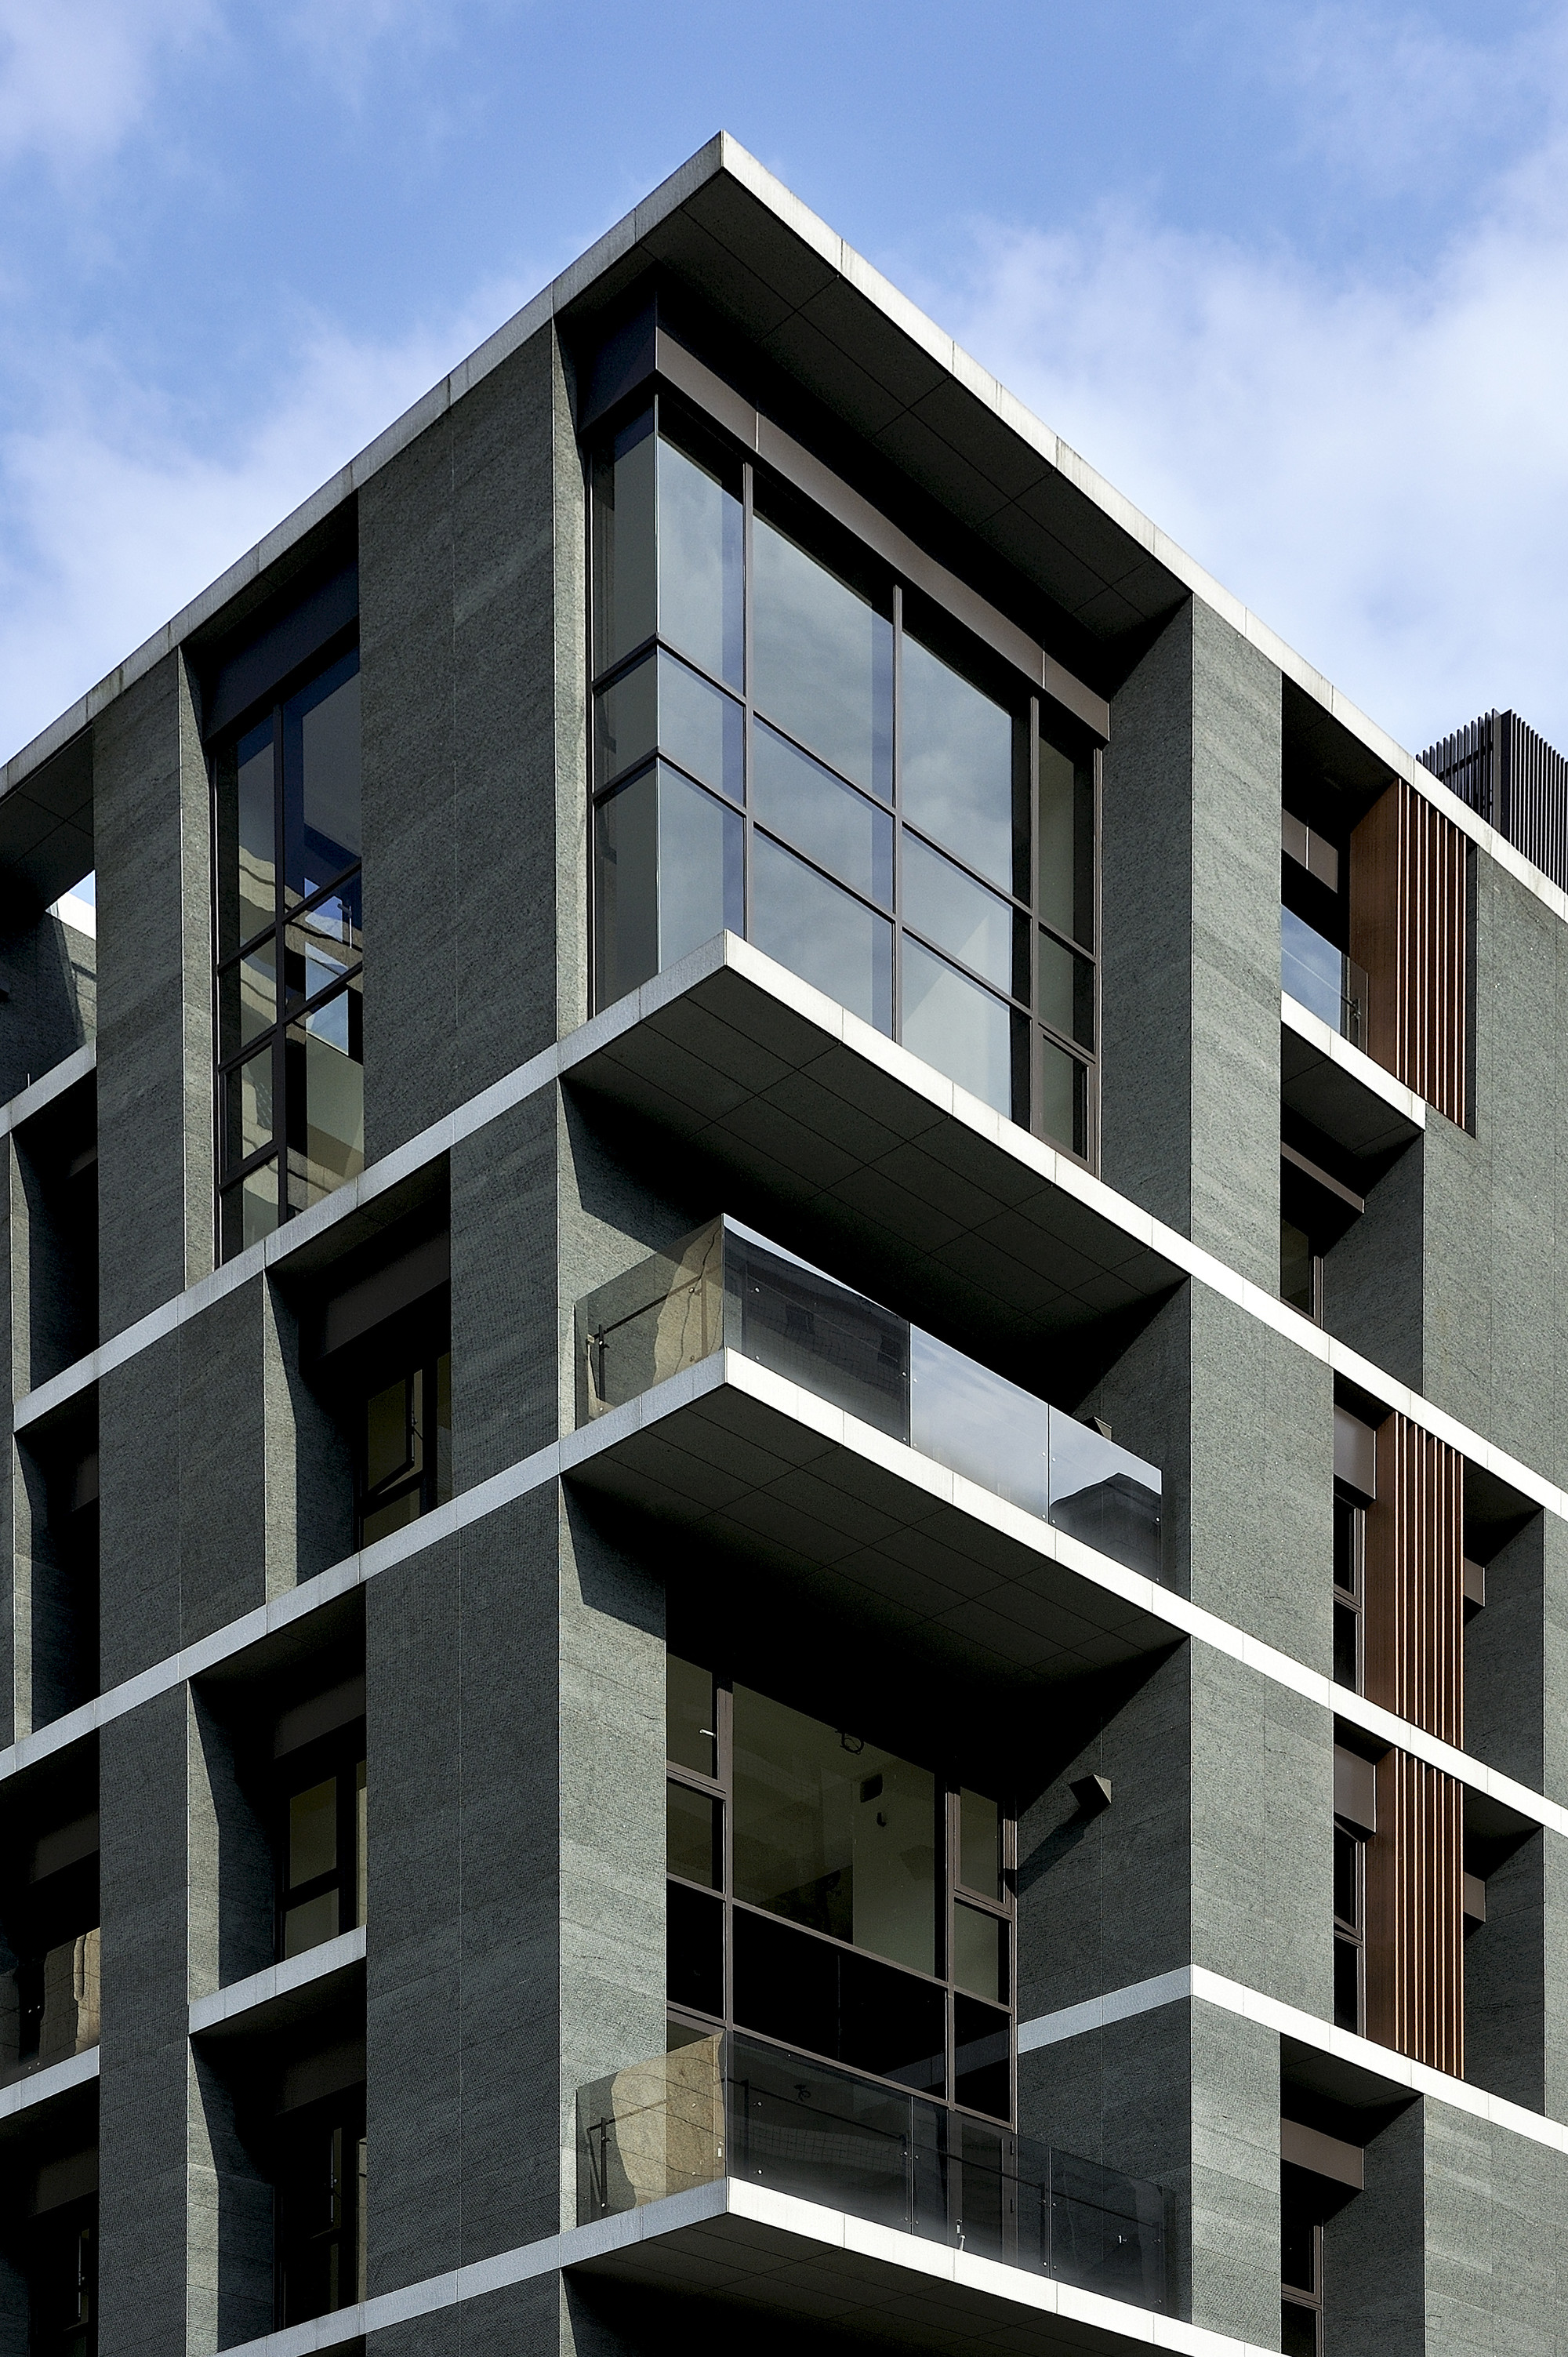 Gallery of u house hsuyuan kuo architecture 4 for Jc house architecture modern facade